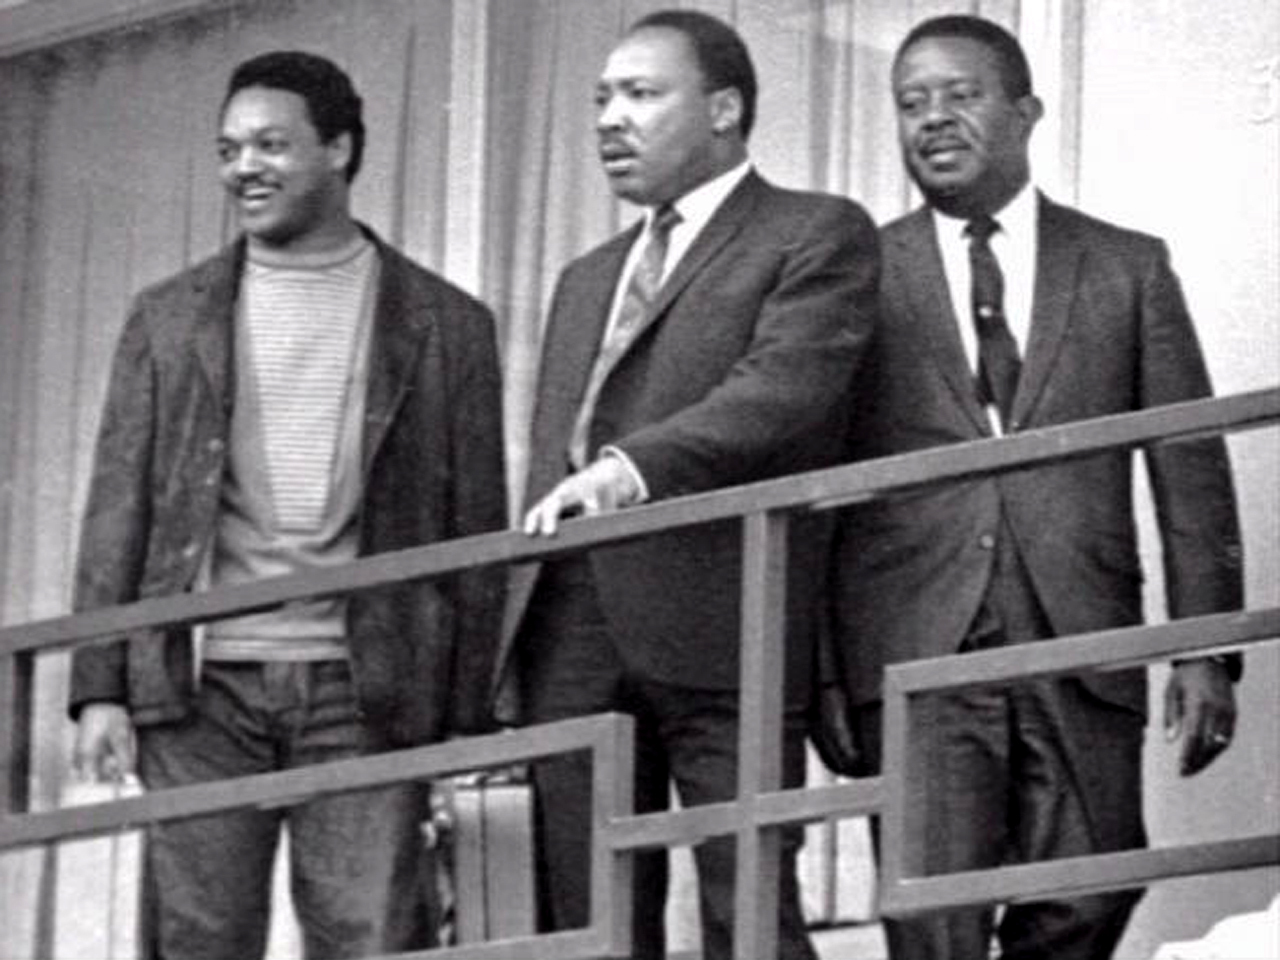 Marthin Luther King Jr Balcony Opens To Public For 1st Time In